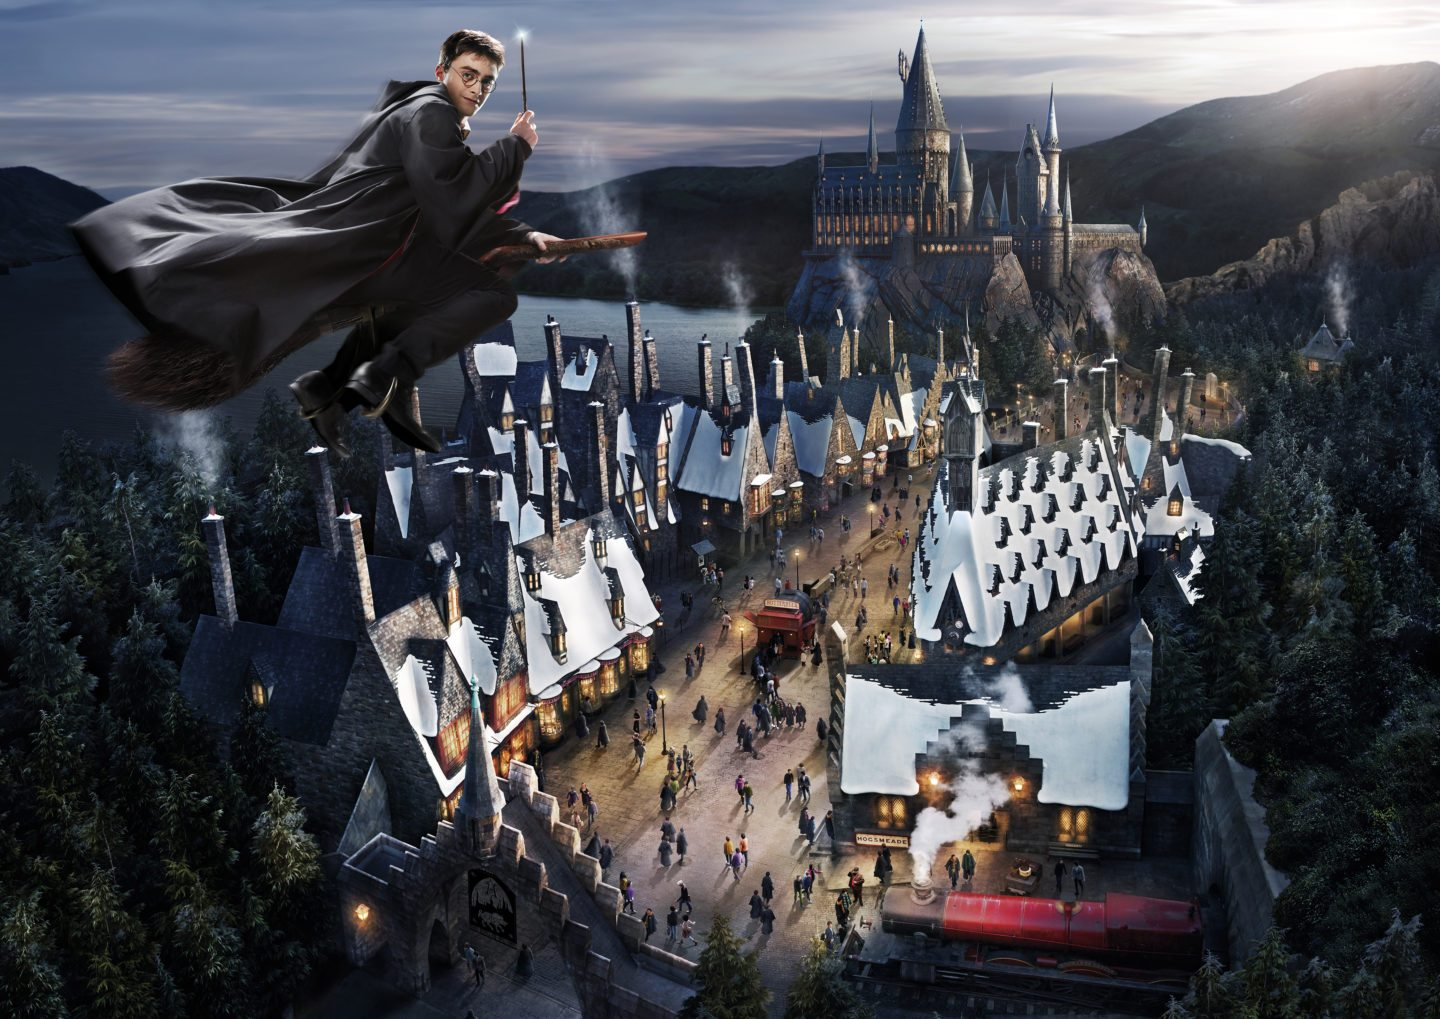 The Wizarding World of Harry Potter (aka: Universal Studios Japan Harry Potter)